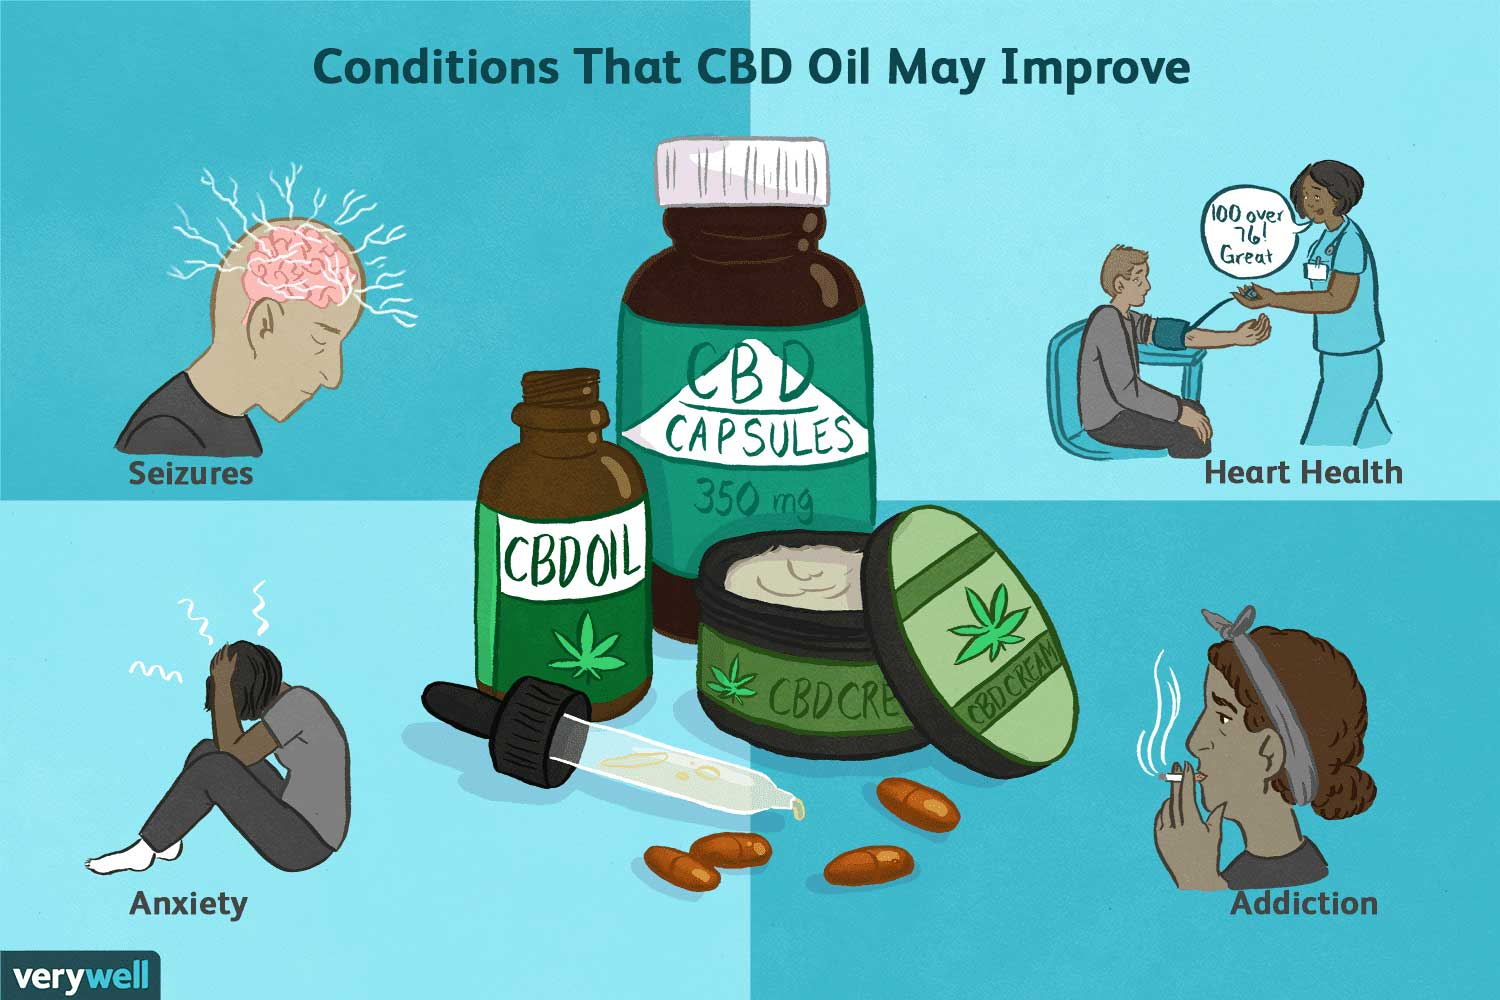 Conditions that CBD Oil may improve